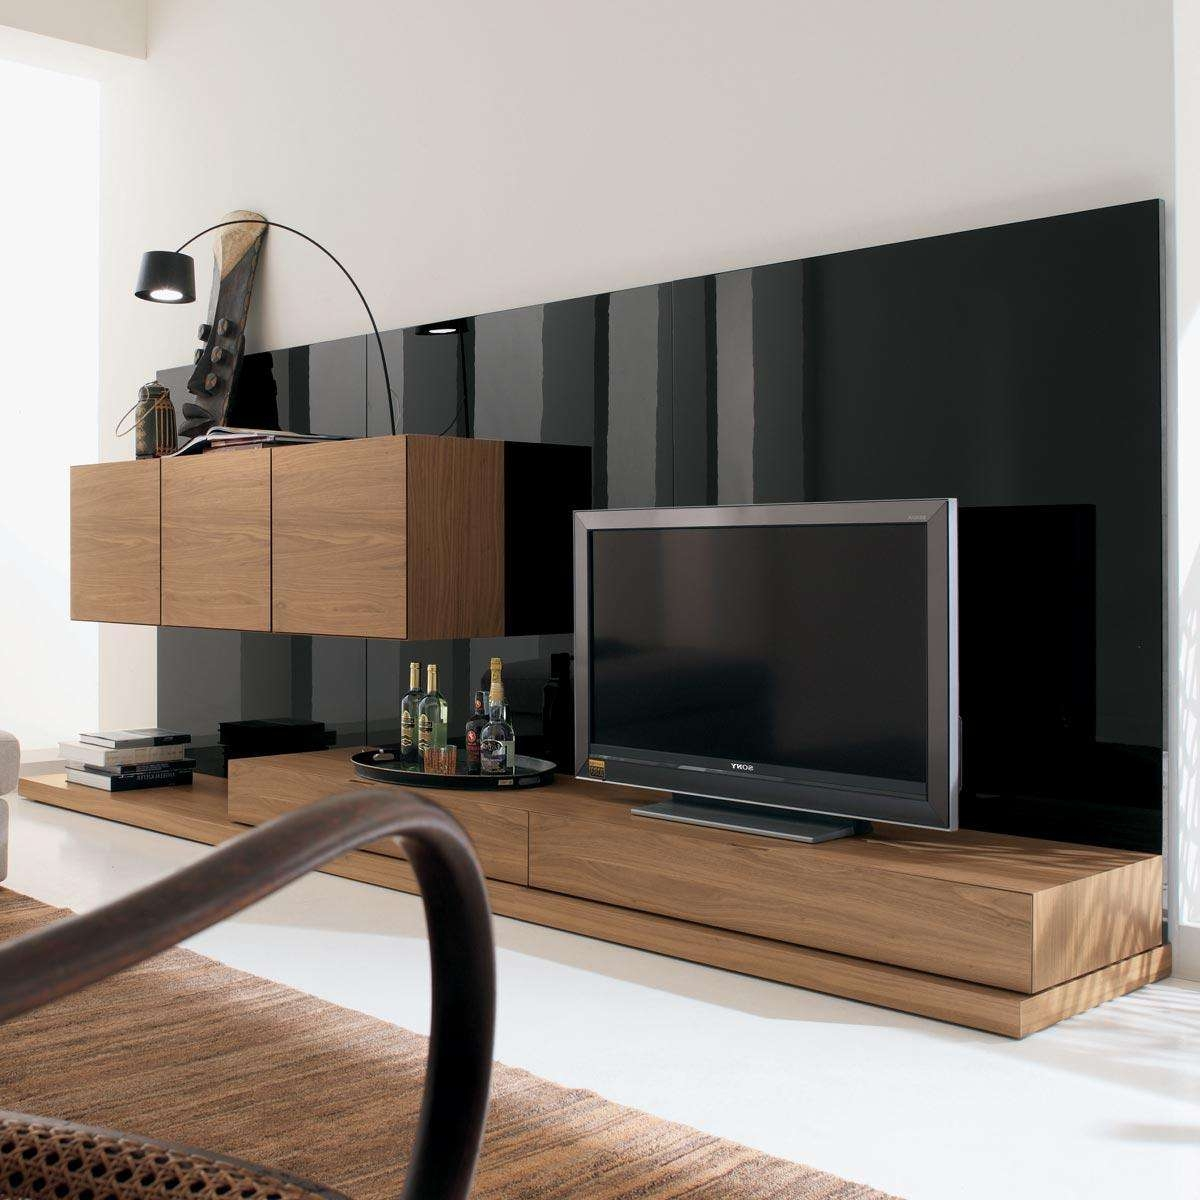 Solid Wood Tv Stand Also Long Tv Stand And Black Wall Living Room Intended For Contemporary Tv Cabinets (View 12 of 20)